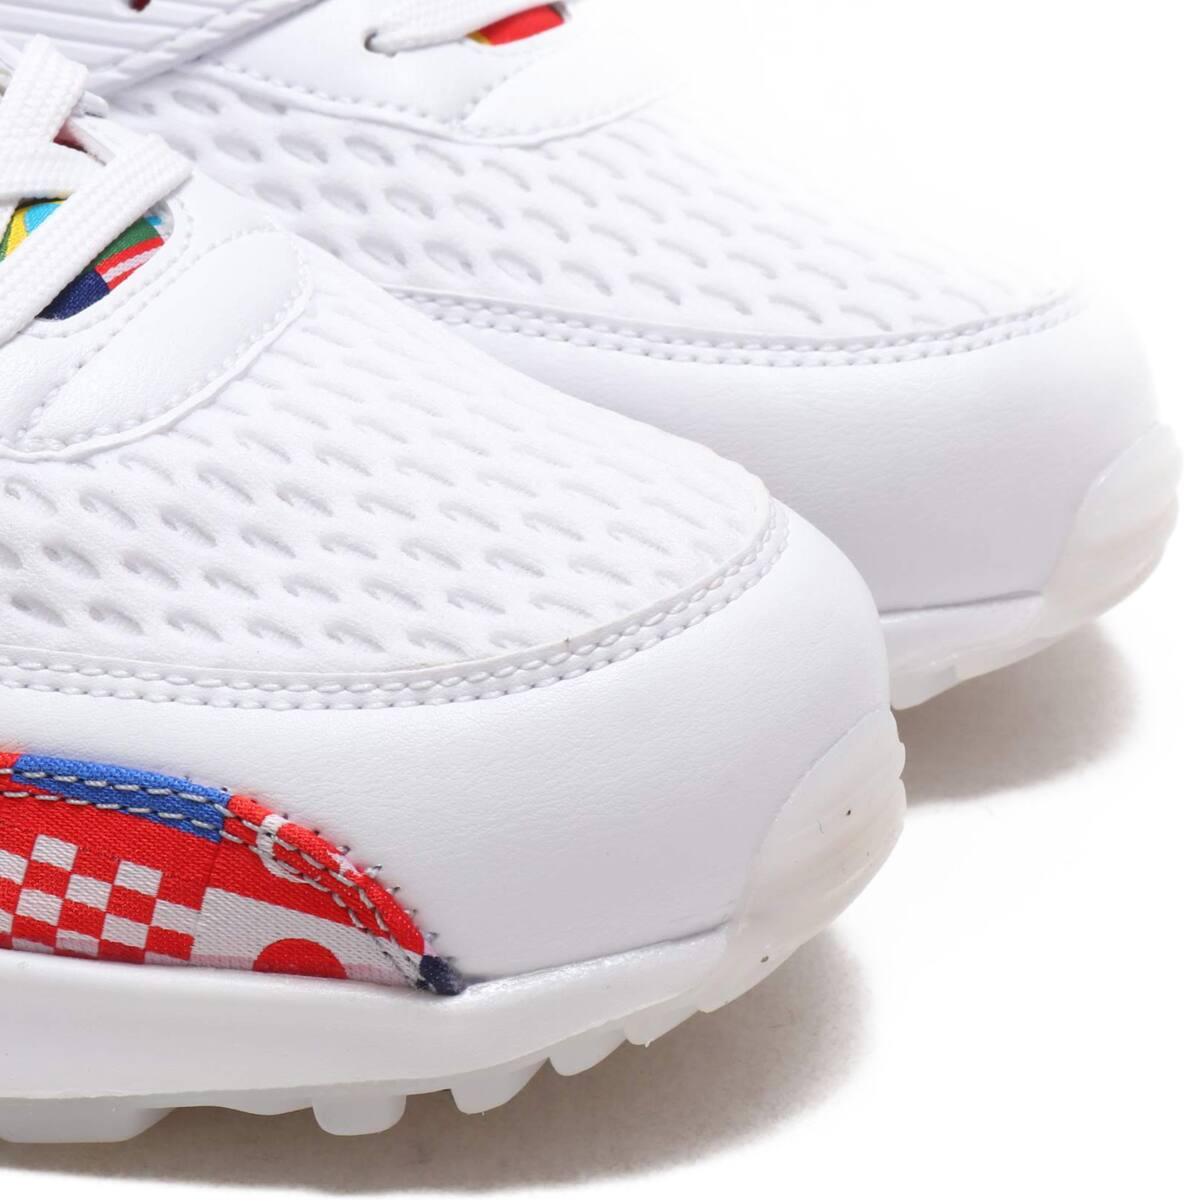 443247acc3 NIKE AIR MAX 90 NIC QS WHITE/MULTI-COLOR_photo_large. [お取り寄せ商品]